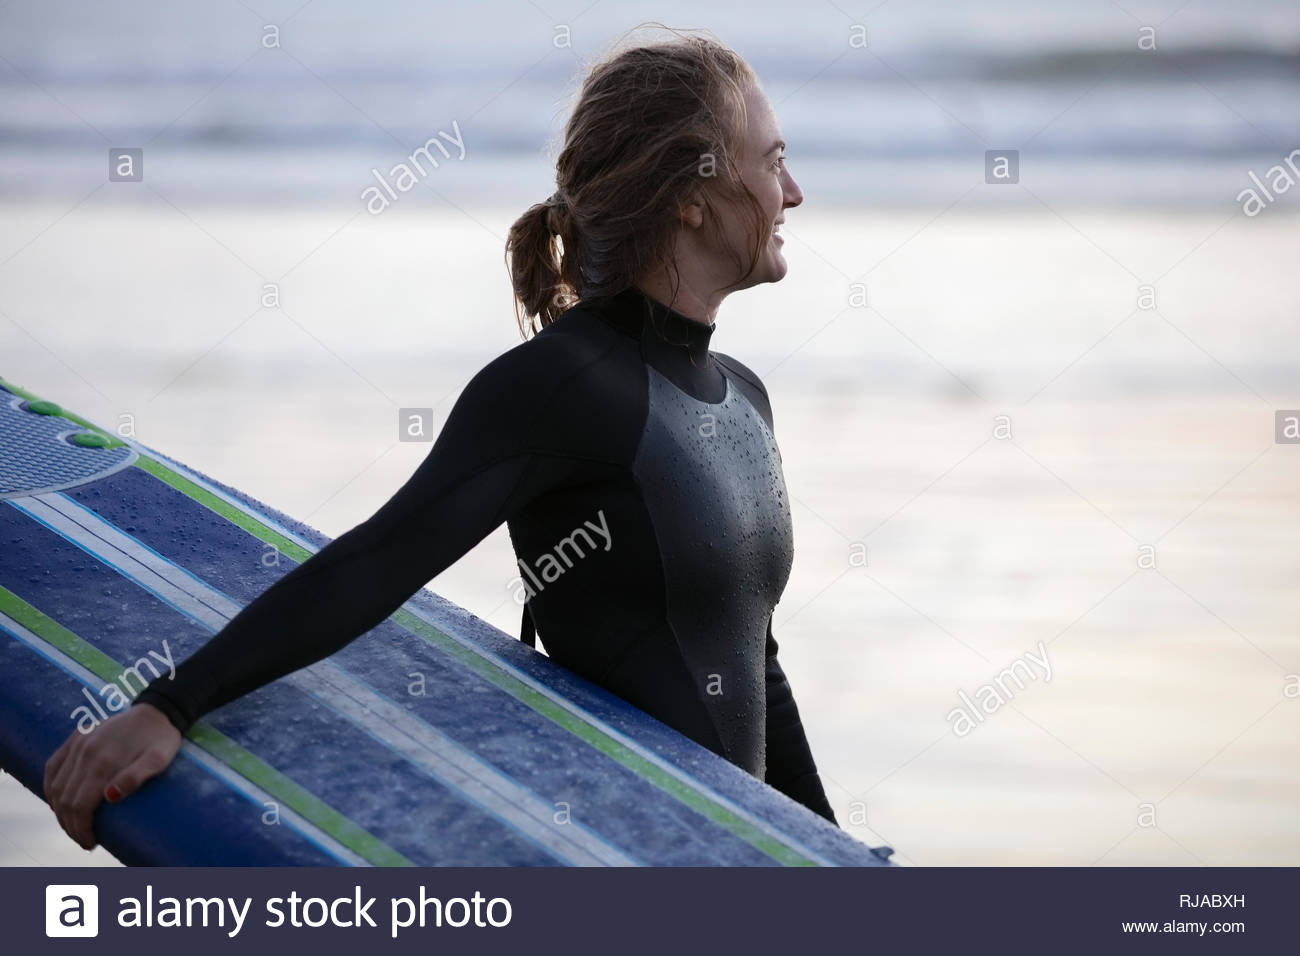 Female surfer in wet suit holding surfboard on beach - Stock Image